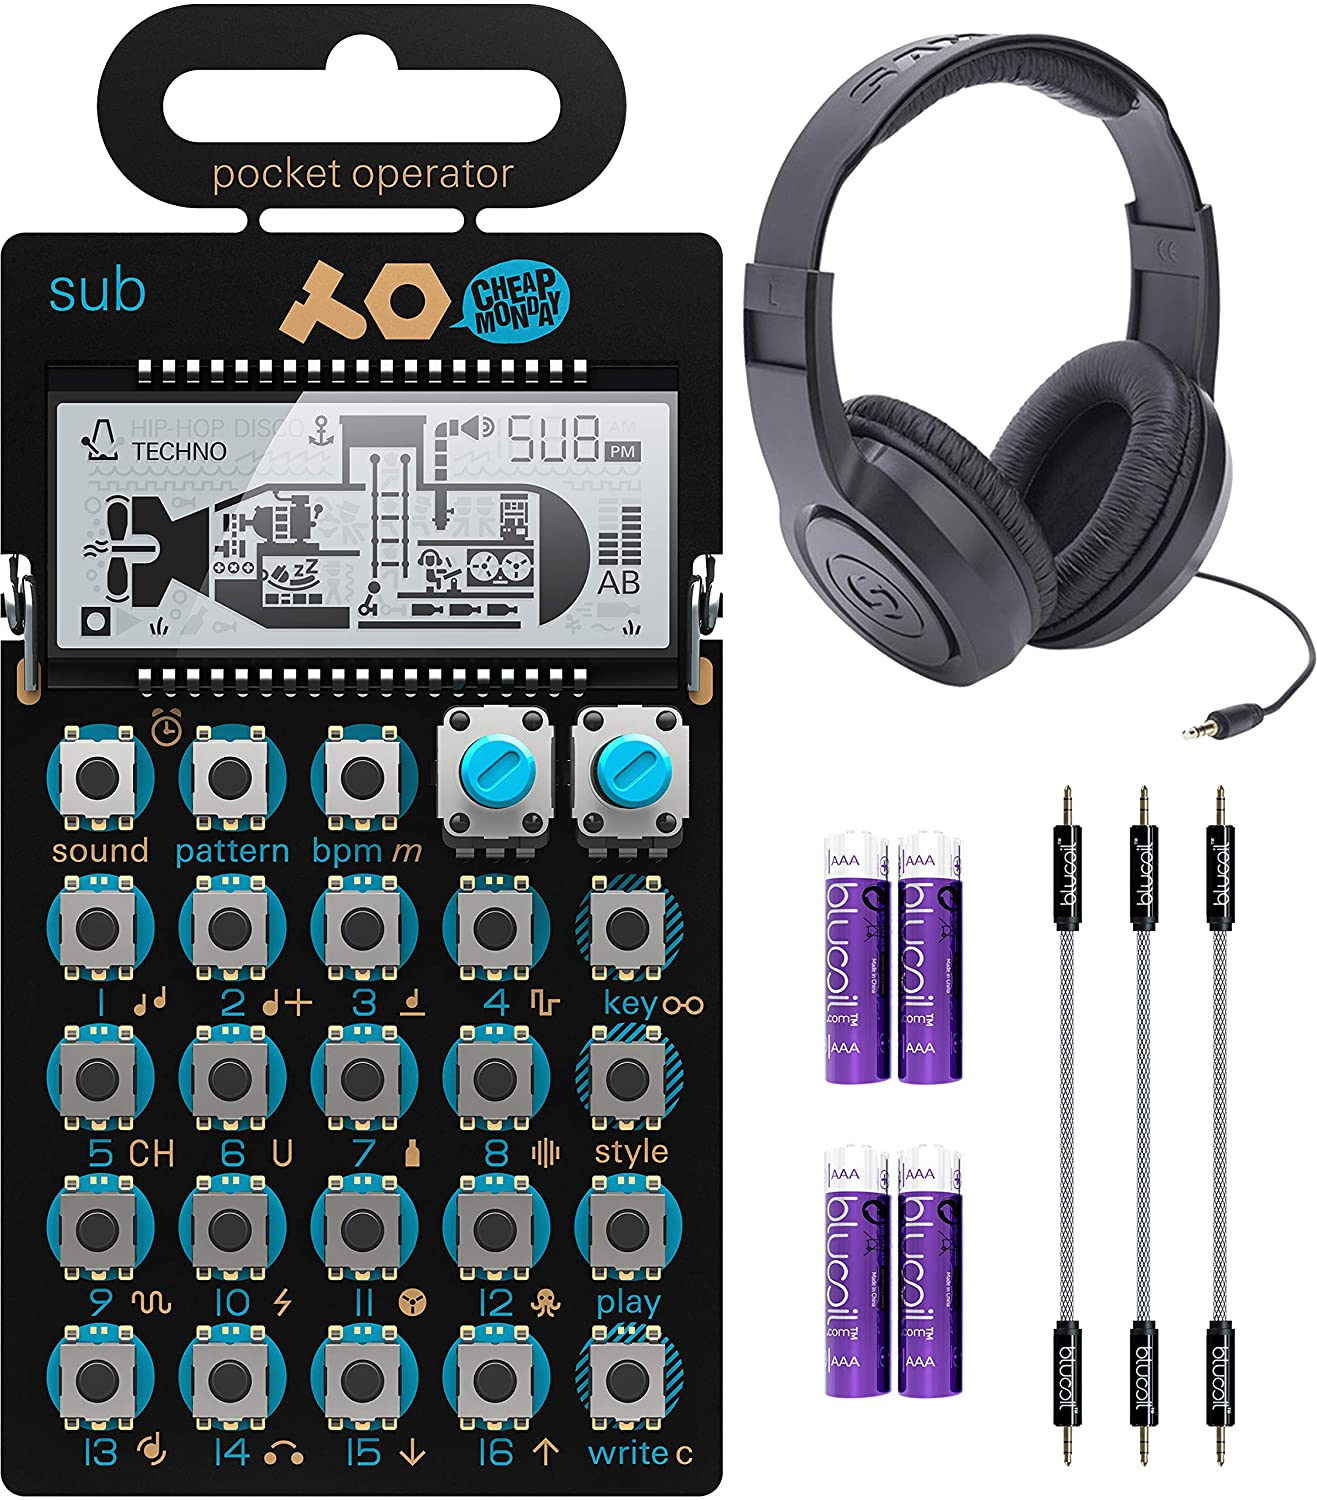 Teenage Engineering PO-14 Pocket Operator Sub Bass Synthesizer Bundle with Samson SR350 Over-Ear Closed-Back Headphones, Blucoil 3-Pack of 7